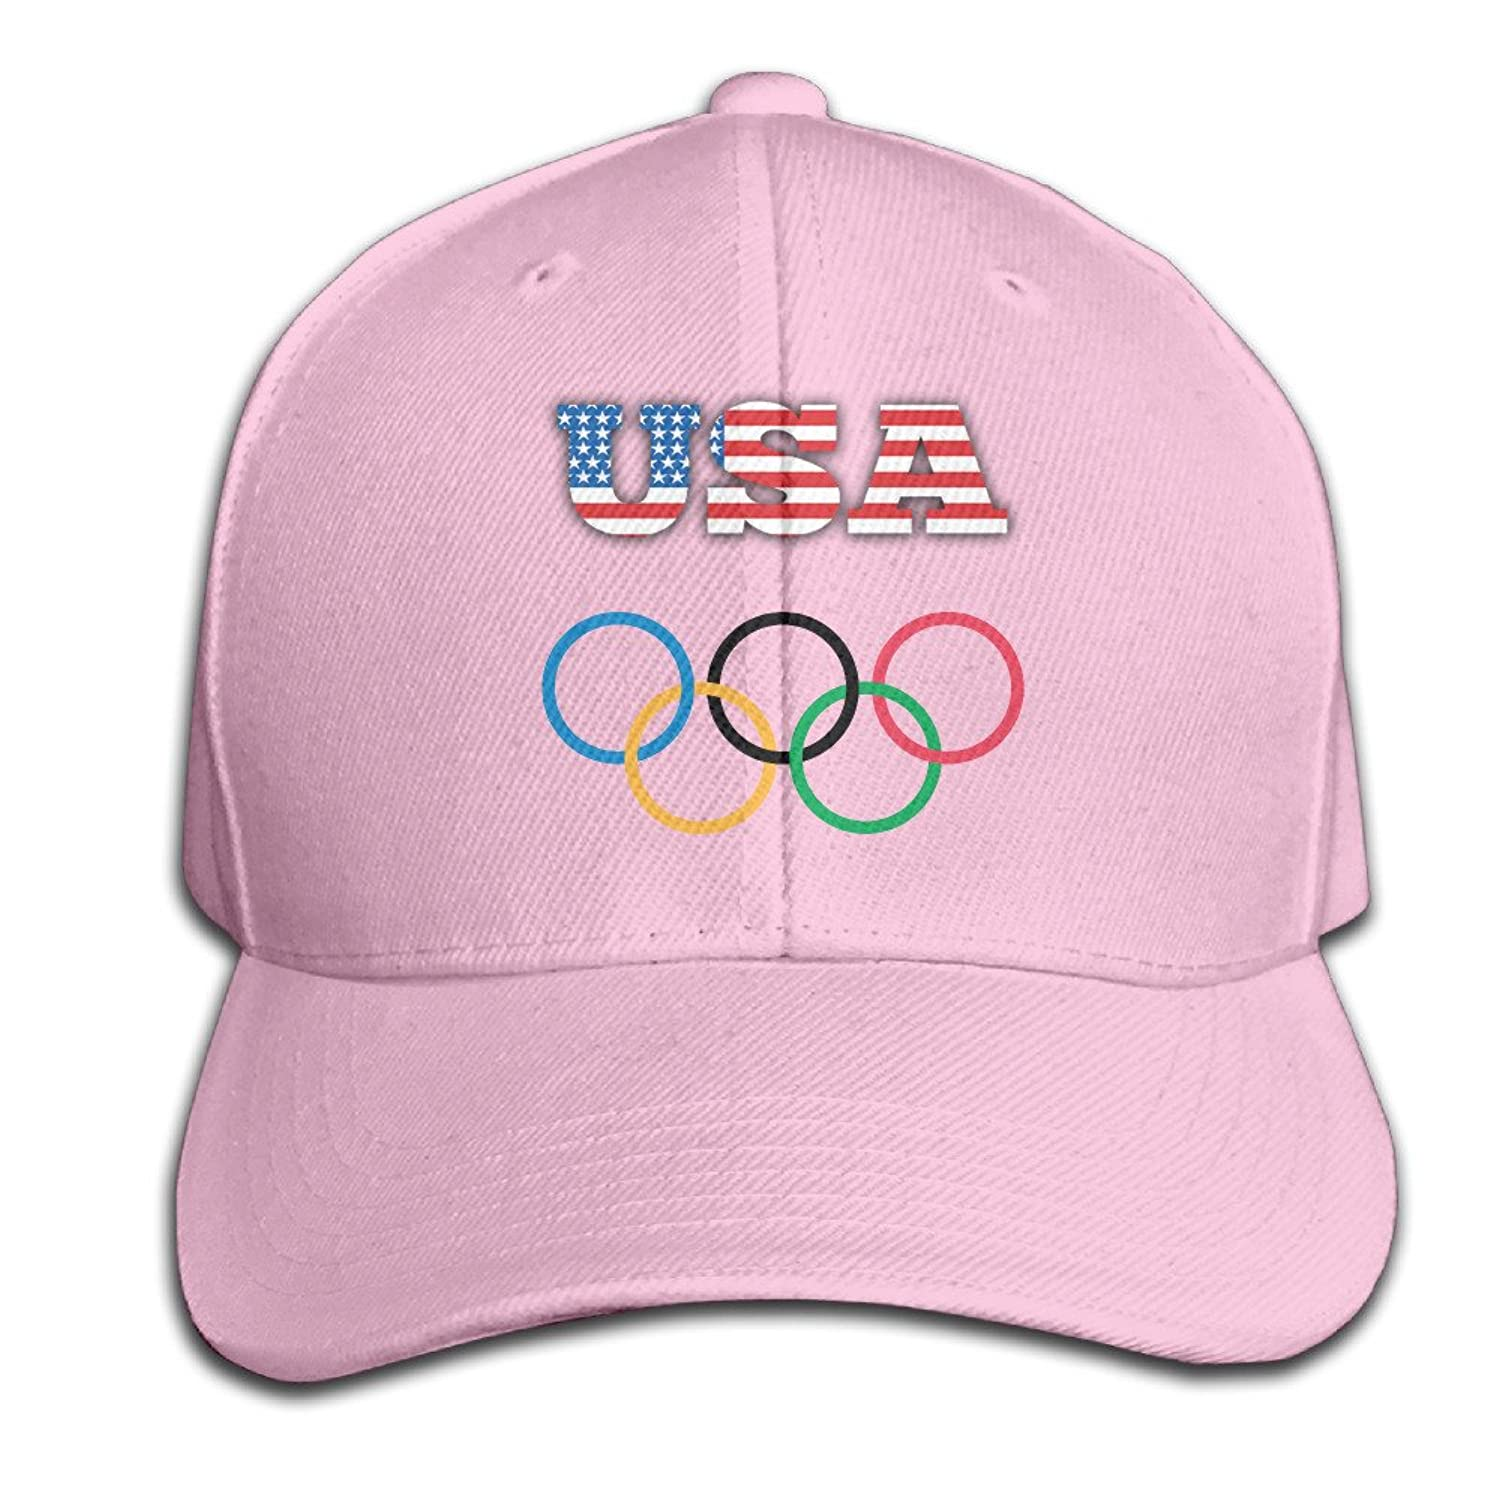 AGMPO Unisex 2016 USA Team Olympic Games Peaked Baseball Cap Hats